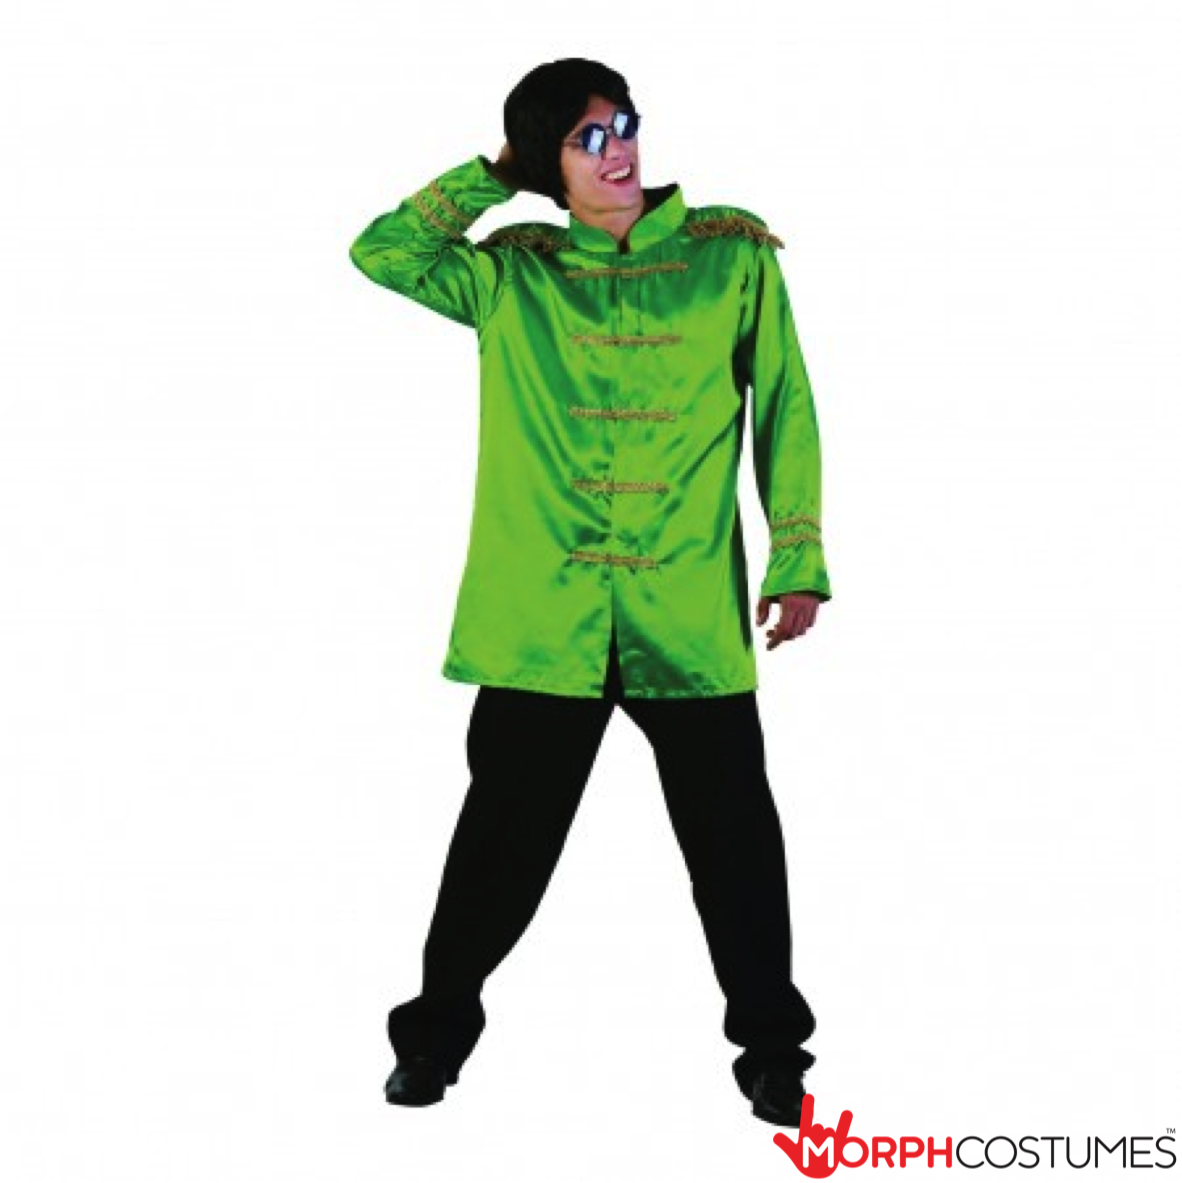 Delightful Mens Fancy Dress Costume Inspiration: Are You A Fan Of The Beatles? Who  Isnu0027t! We Canu0027t Imagine Why Anyone Would Not Want To Dress Up In This  Awesome Green ...